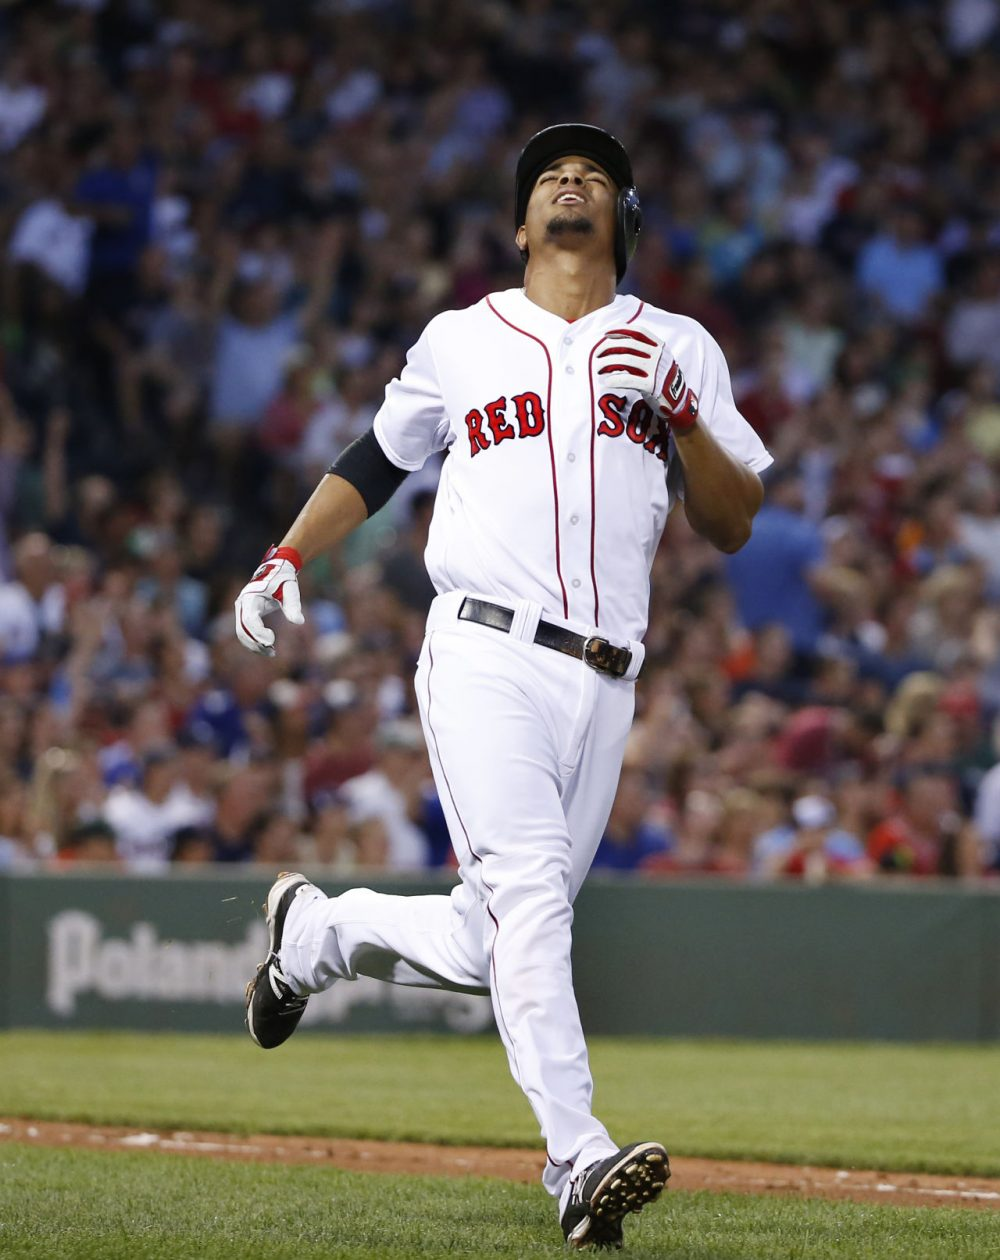 Boston Red Sox's Xander Bogaerts reacts after his deep fly was caught in the fourth inning of a baseball game against the Chicago Cubs at Fenway Park in Boston on Tuesday. (Elise Amendola/AP)